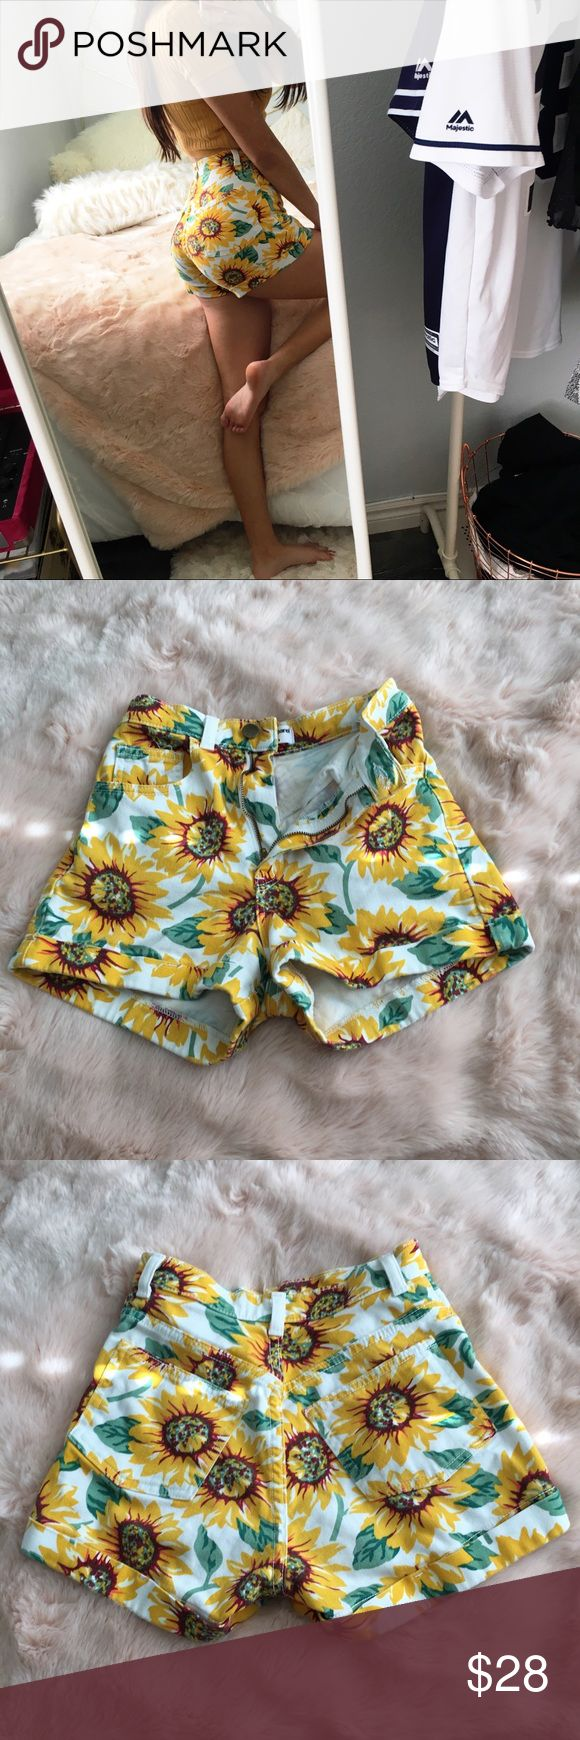 📆HOST PICK📆 American Apparel Sunflower Shorts American Apparel Sunflower Denim Shorts  High waisted Size 24/25 In great condition  I love these but they're a bit too small for me (I'm a 25/26 W usually) Jean shorts material with bright yellow and green floral print, very on trend for 70s festival summer looks Such a cute statement piece to liven up some basics! American Apparel Shorts Jean Shorts